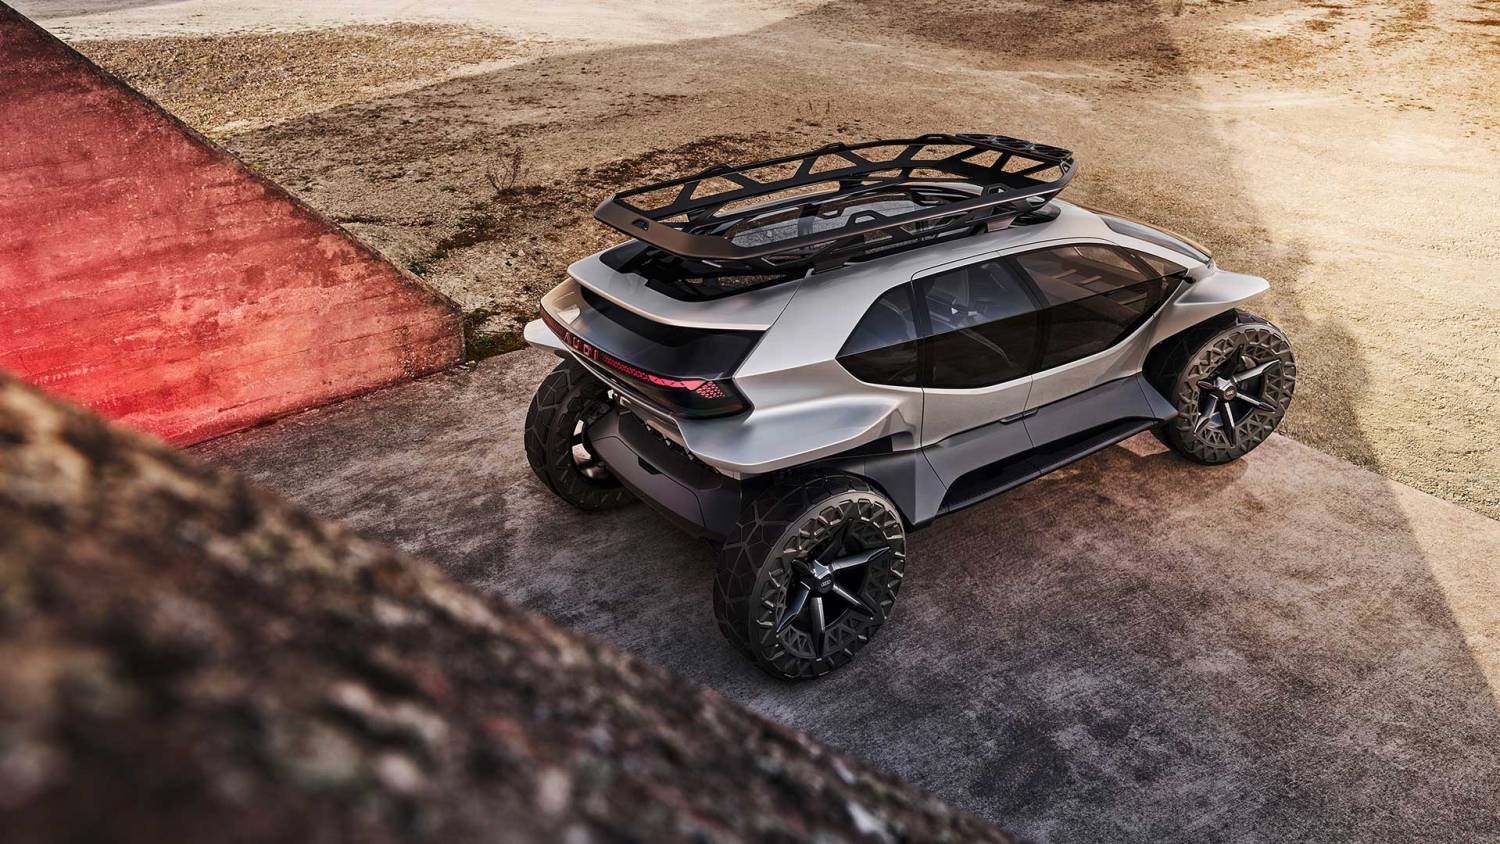 Frankfurt Off Road Future